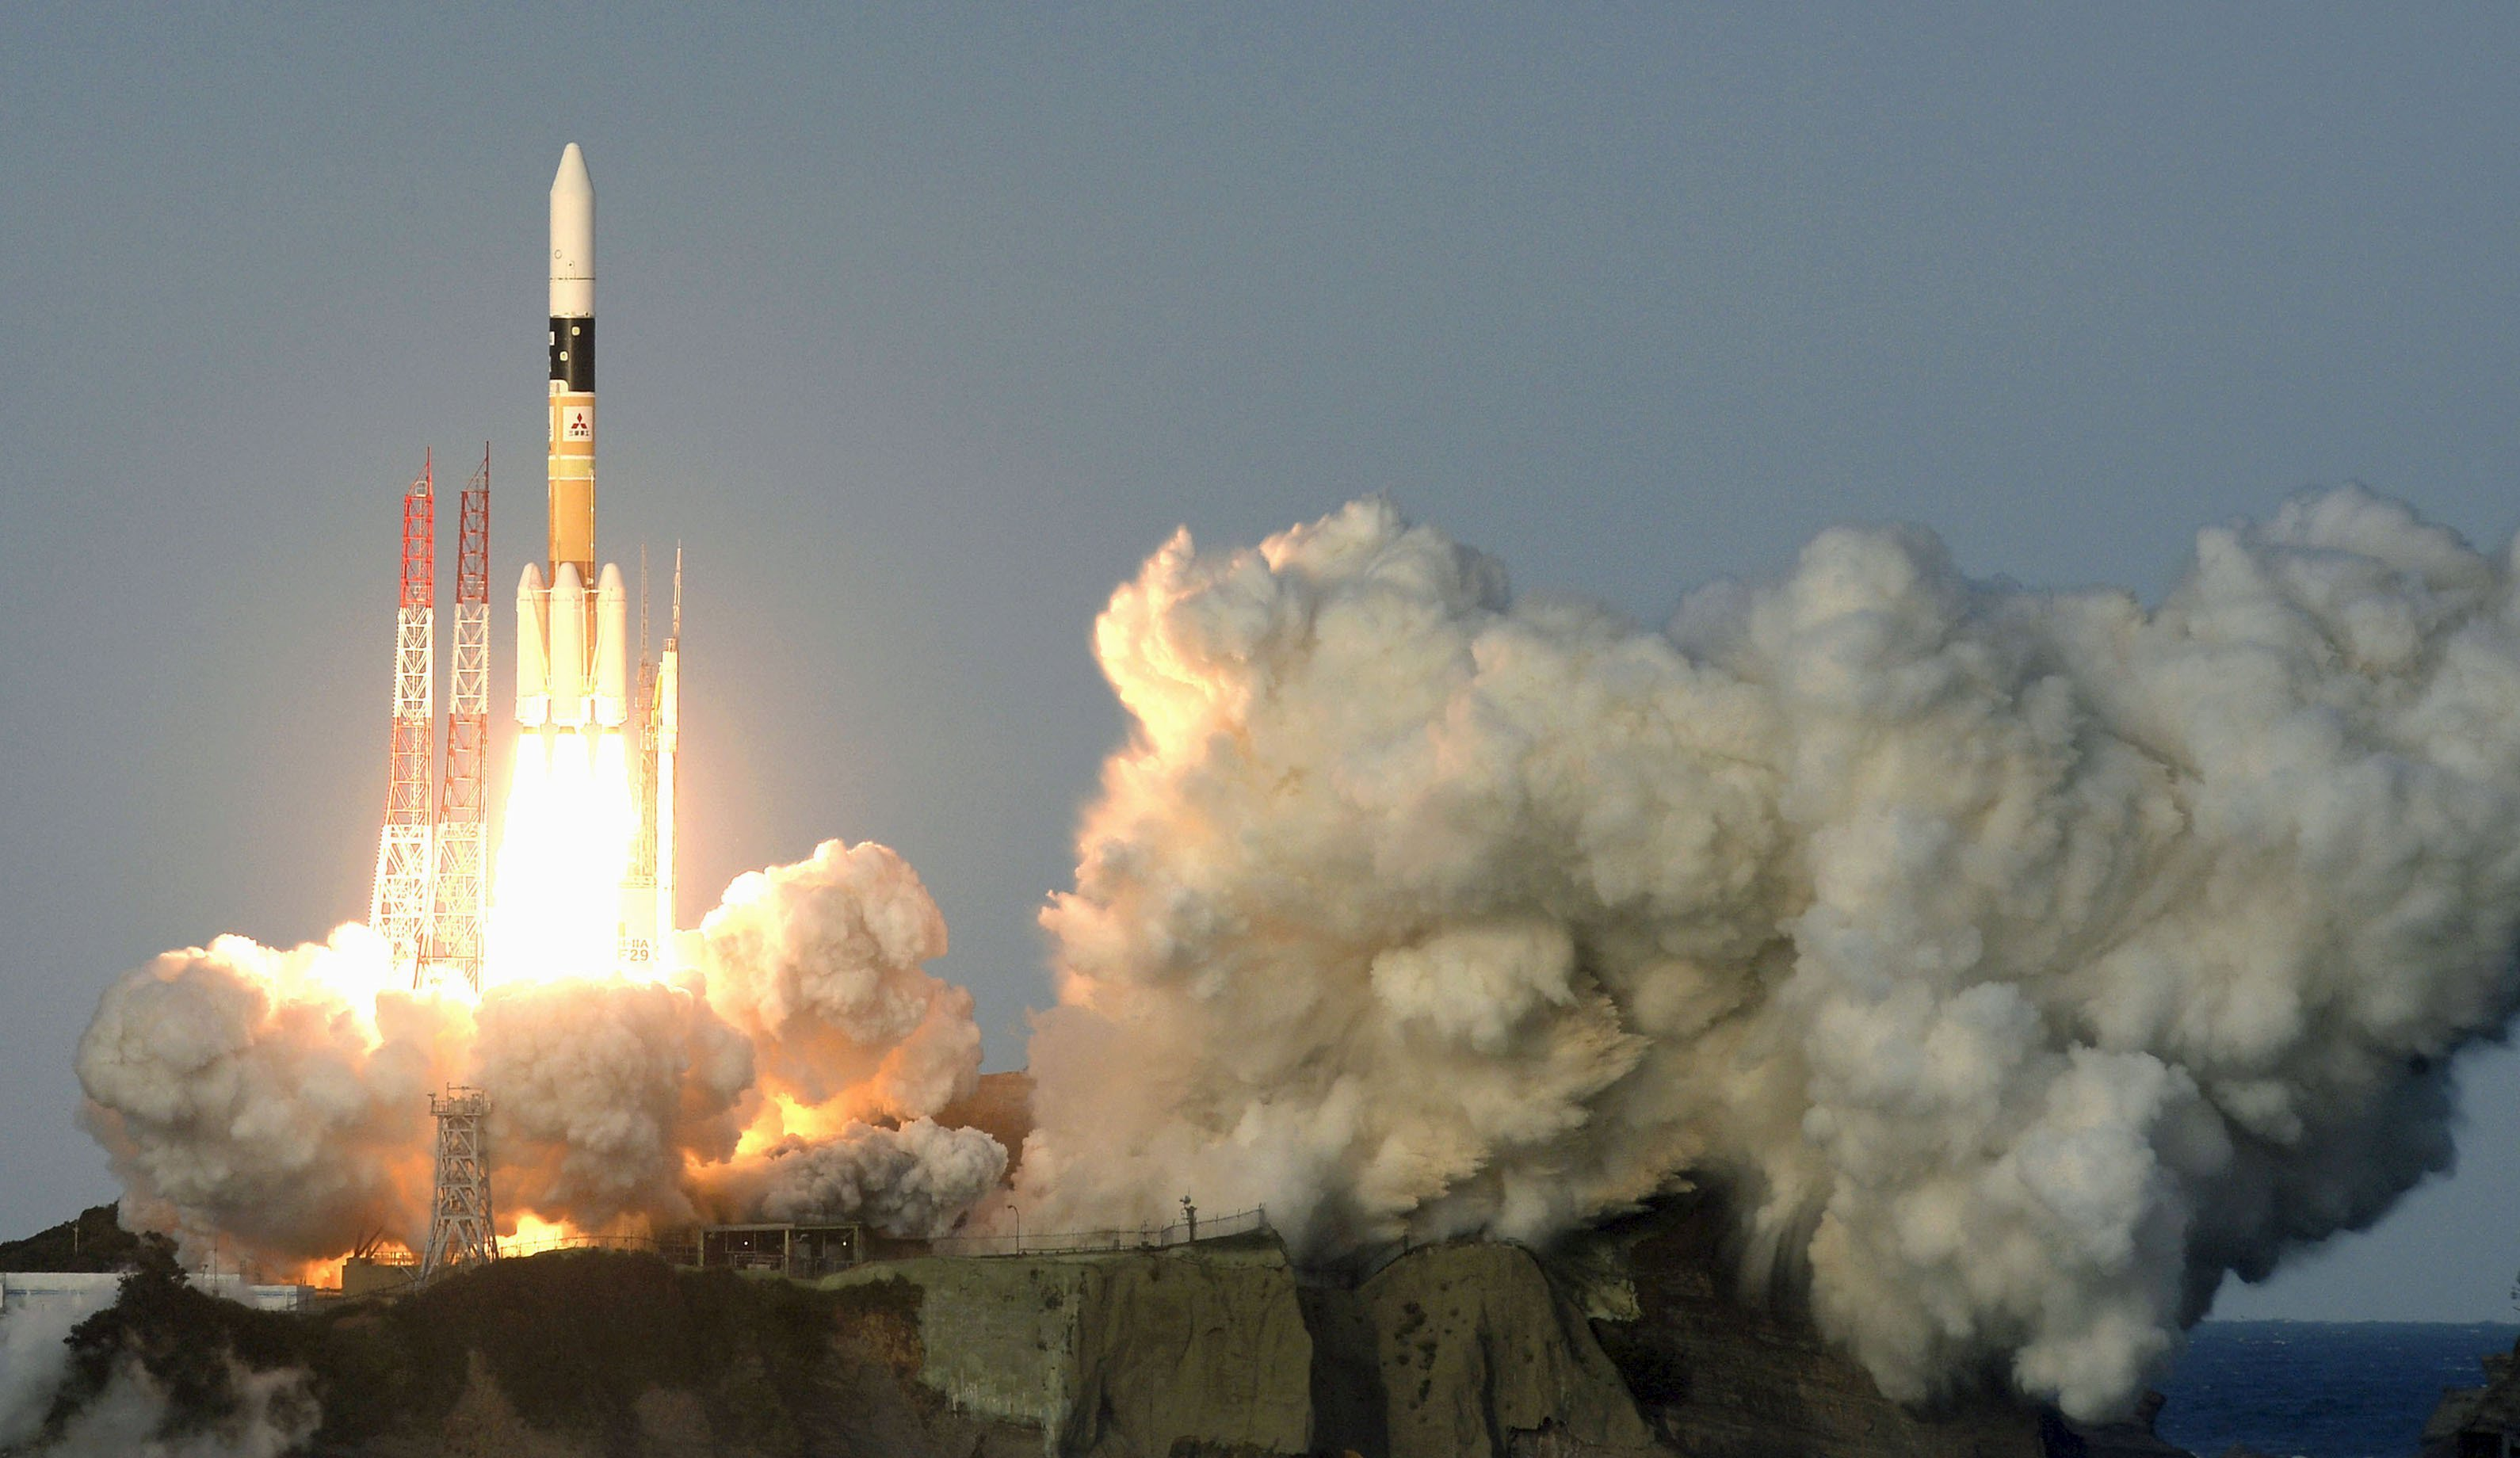 A H-IIA rocket lifts off from the launching pad at Tanegashima Space Center on the Japanese southwestern island of Tanegashima on Nov. 24, 2015.